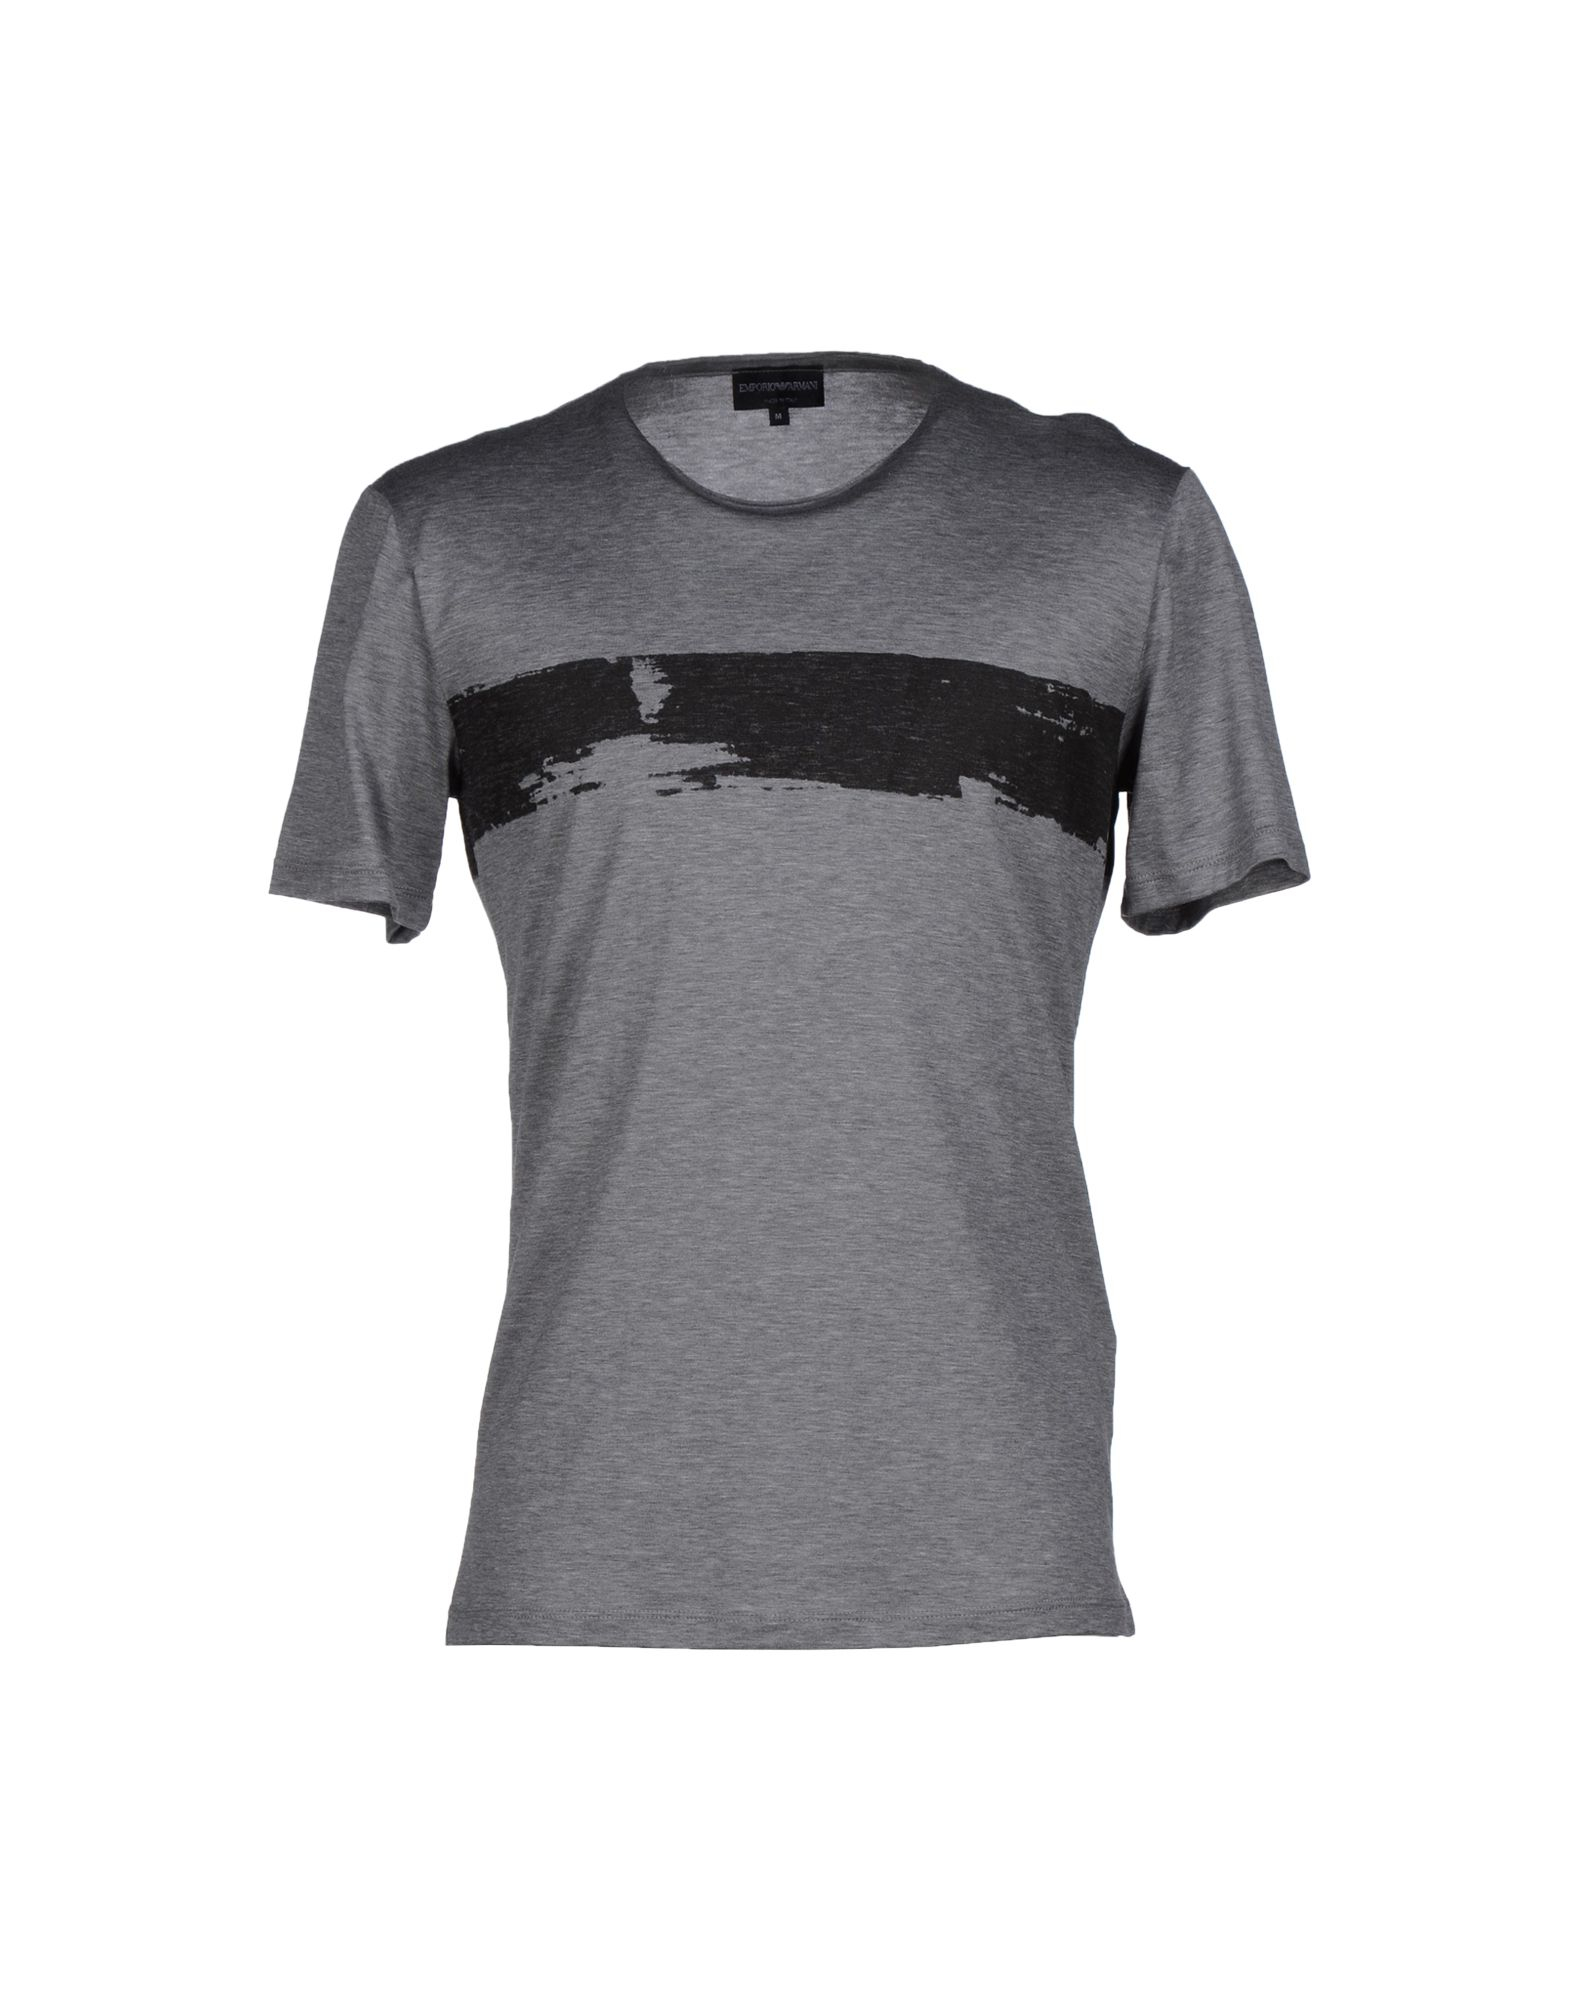 emporio armani t shirt in gray for men grey lyst. Black Bedroom Furniture Sets. Home Design Ideas